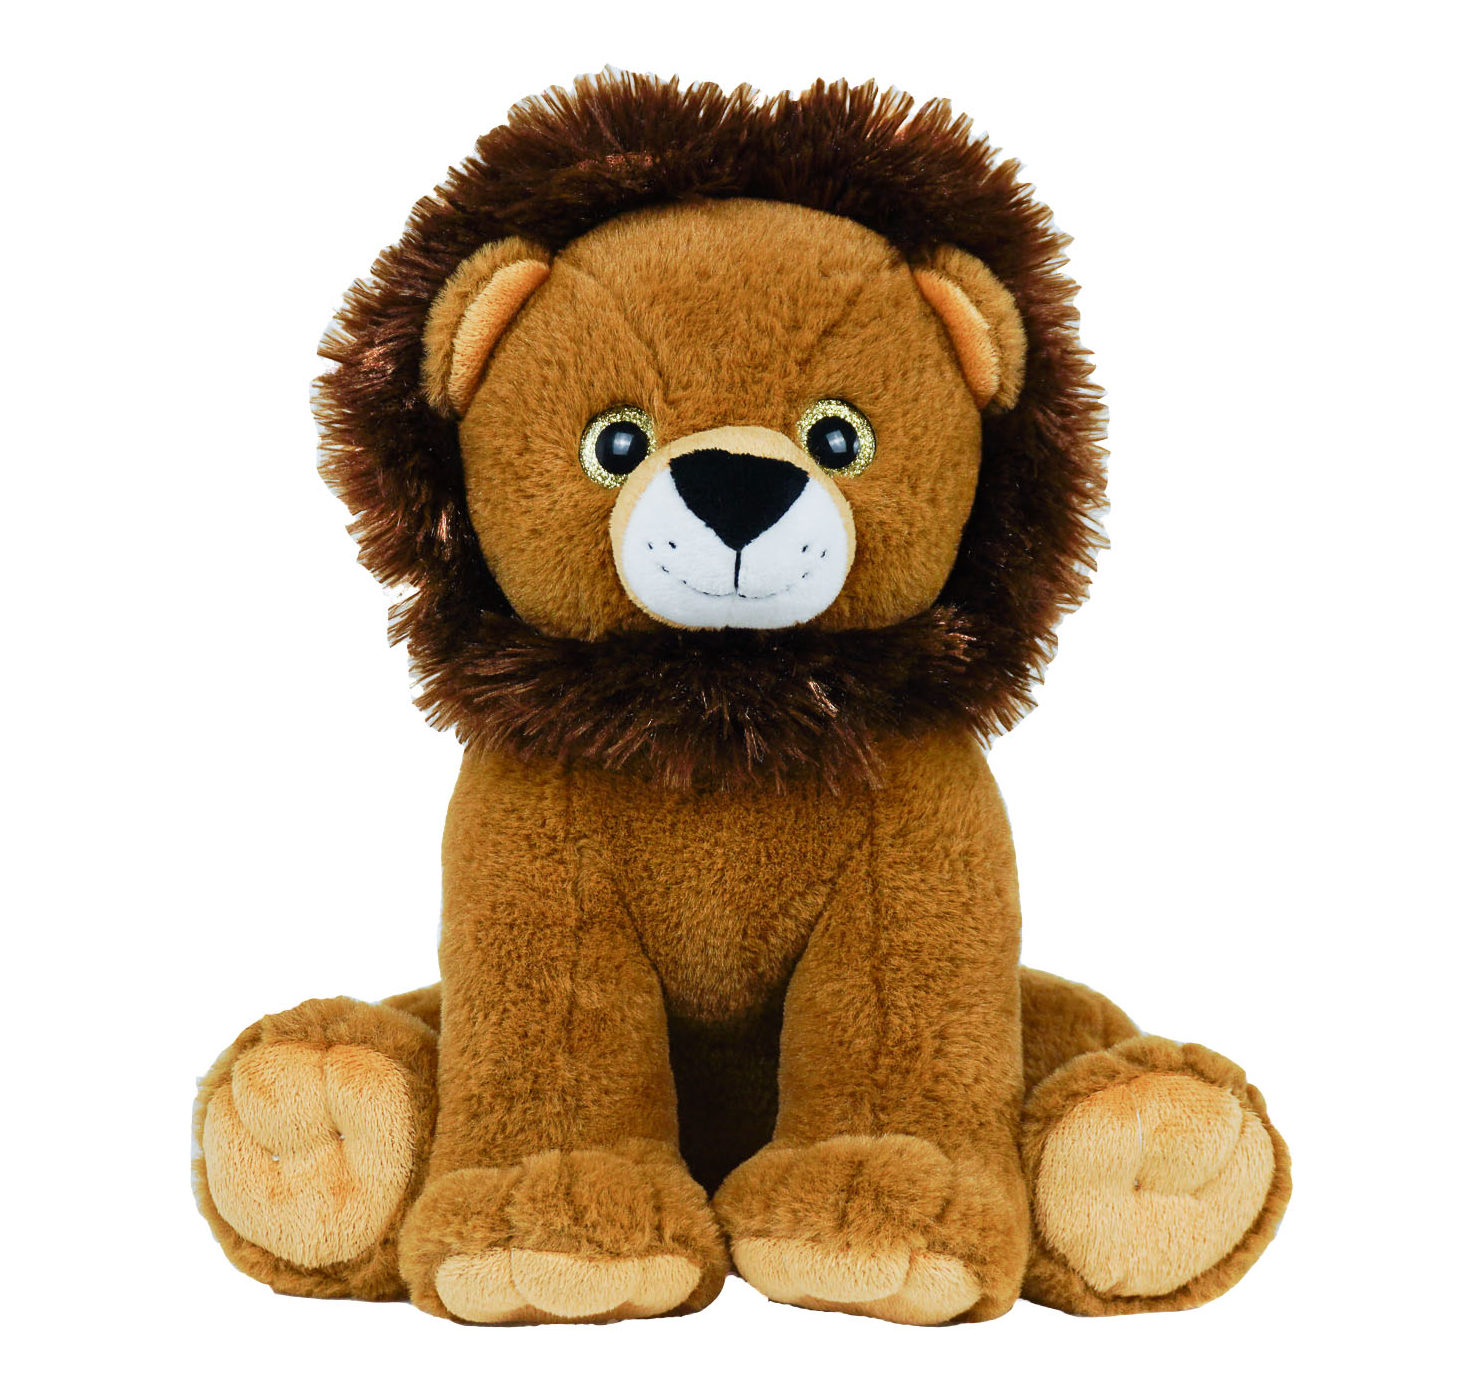 THE BEAR FACTORY LION